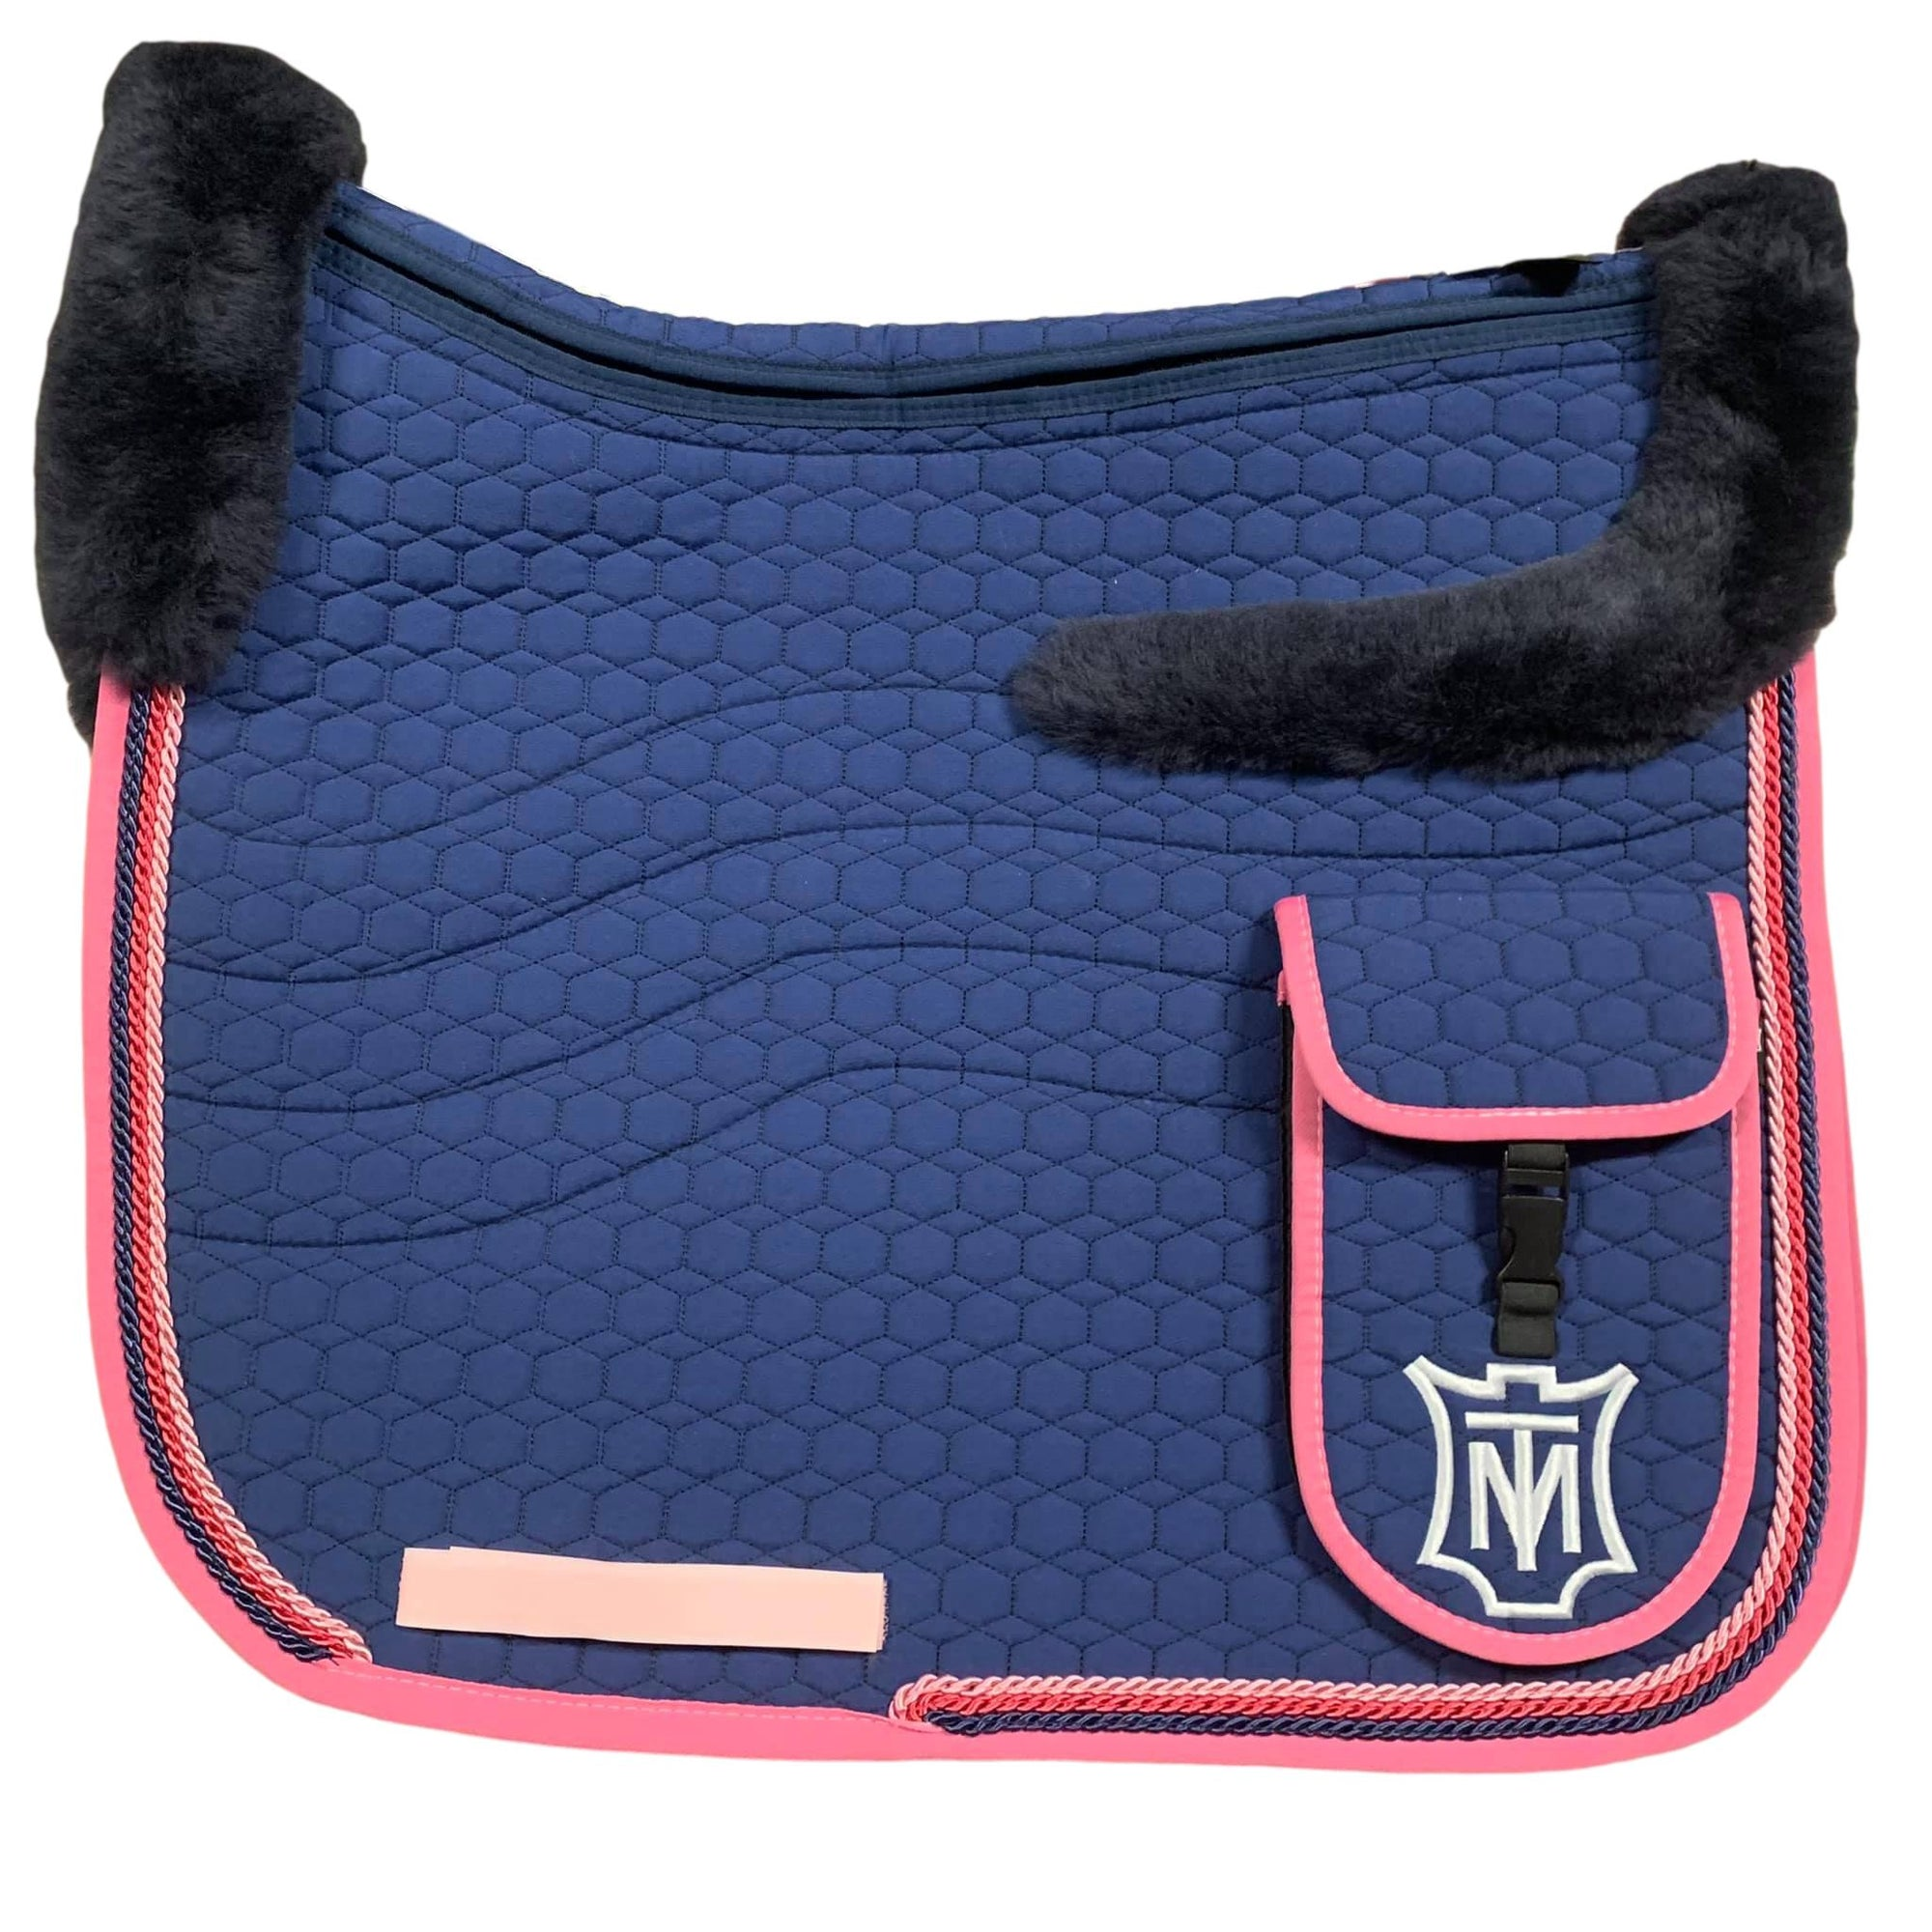 E.A Mattes Instock - XL  Top fleece Trekking/Dressage - Navy/Rose + Correctional